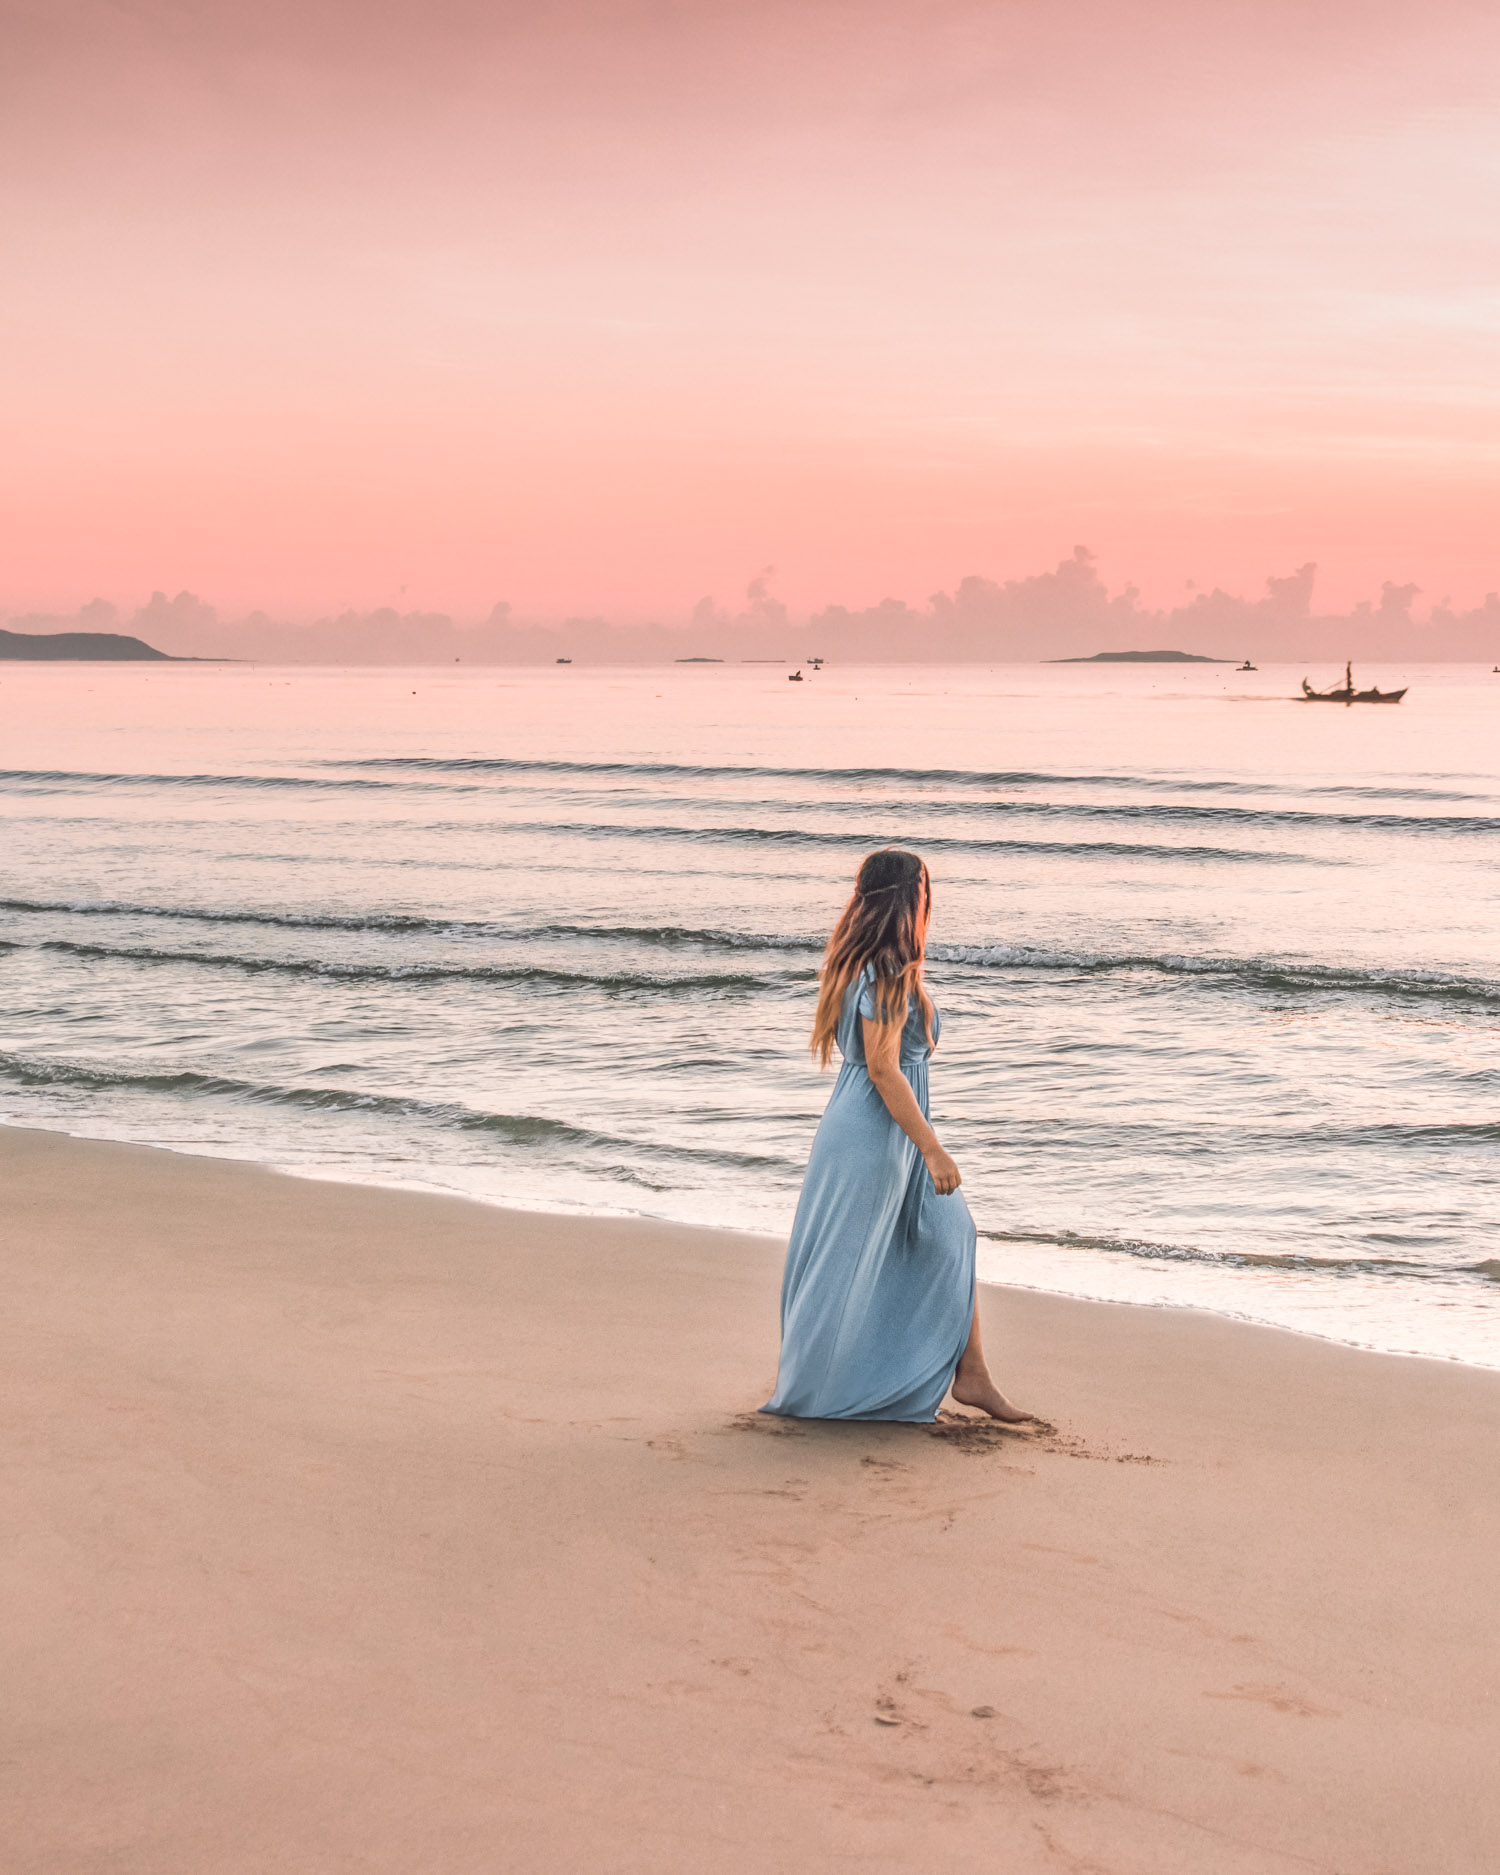 Adaras walking on beach in pink sunrise in Phu Yen, Vietnam